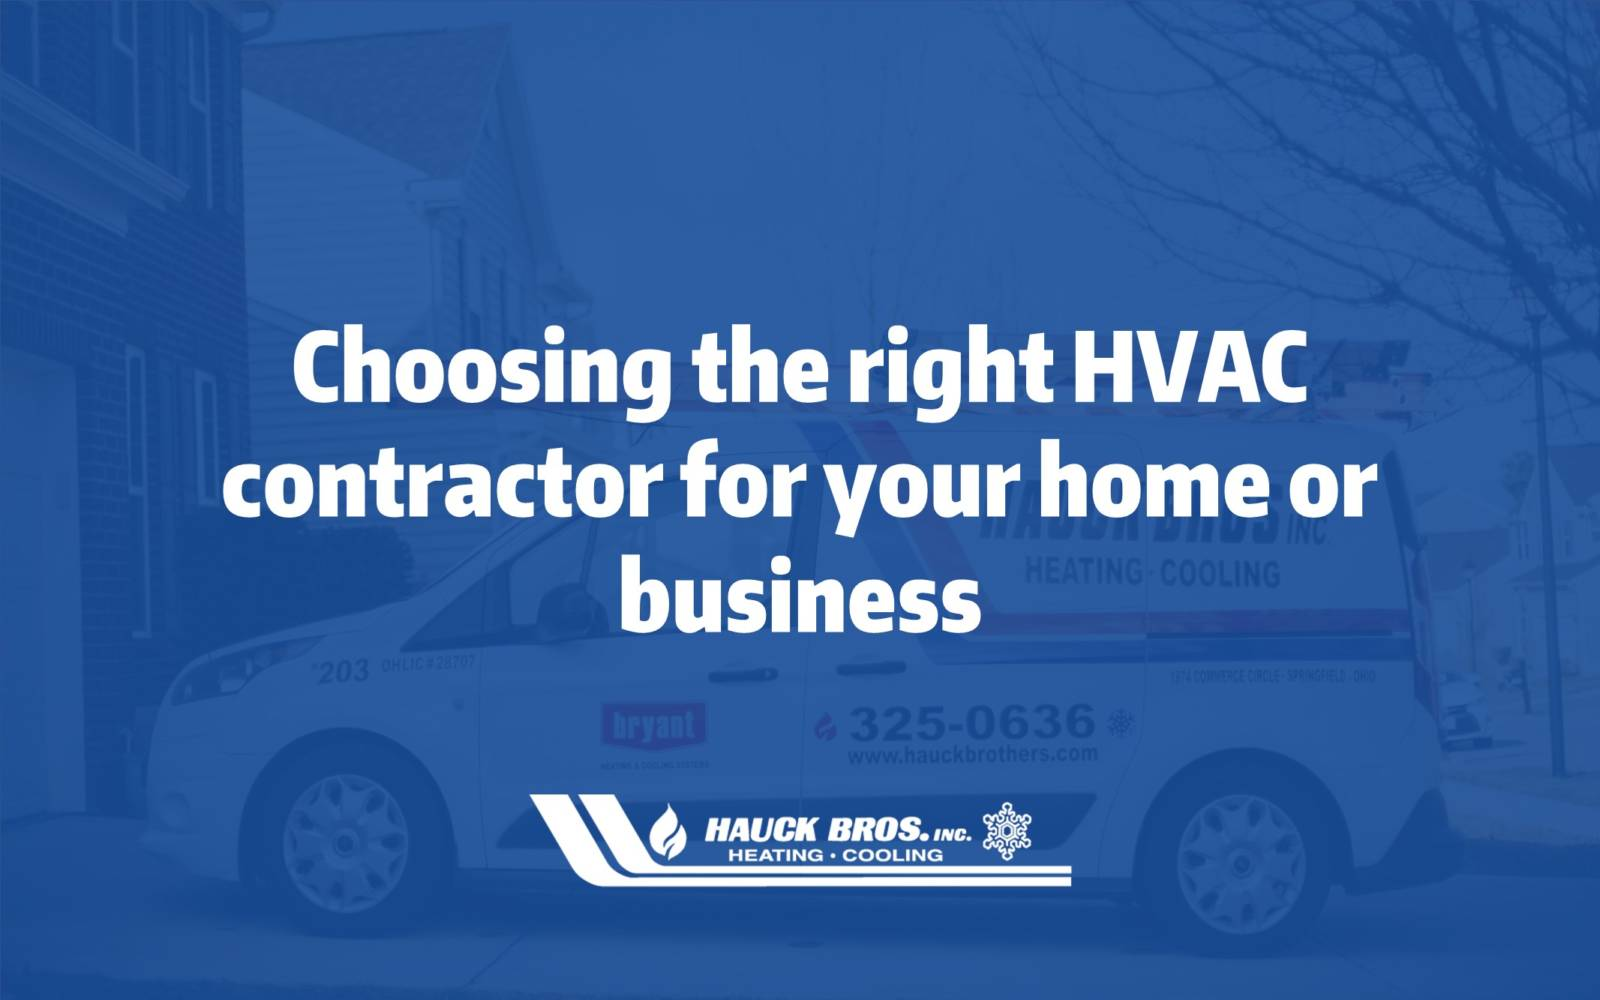 Choosing right HVAC contractor